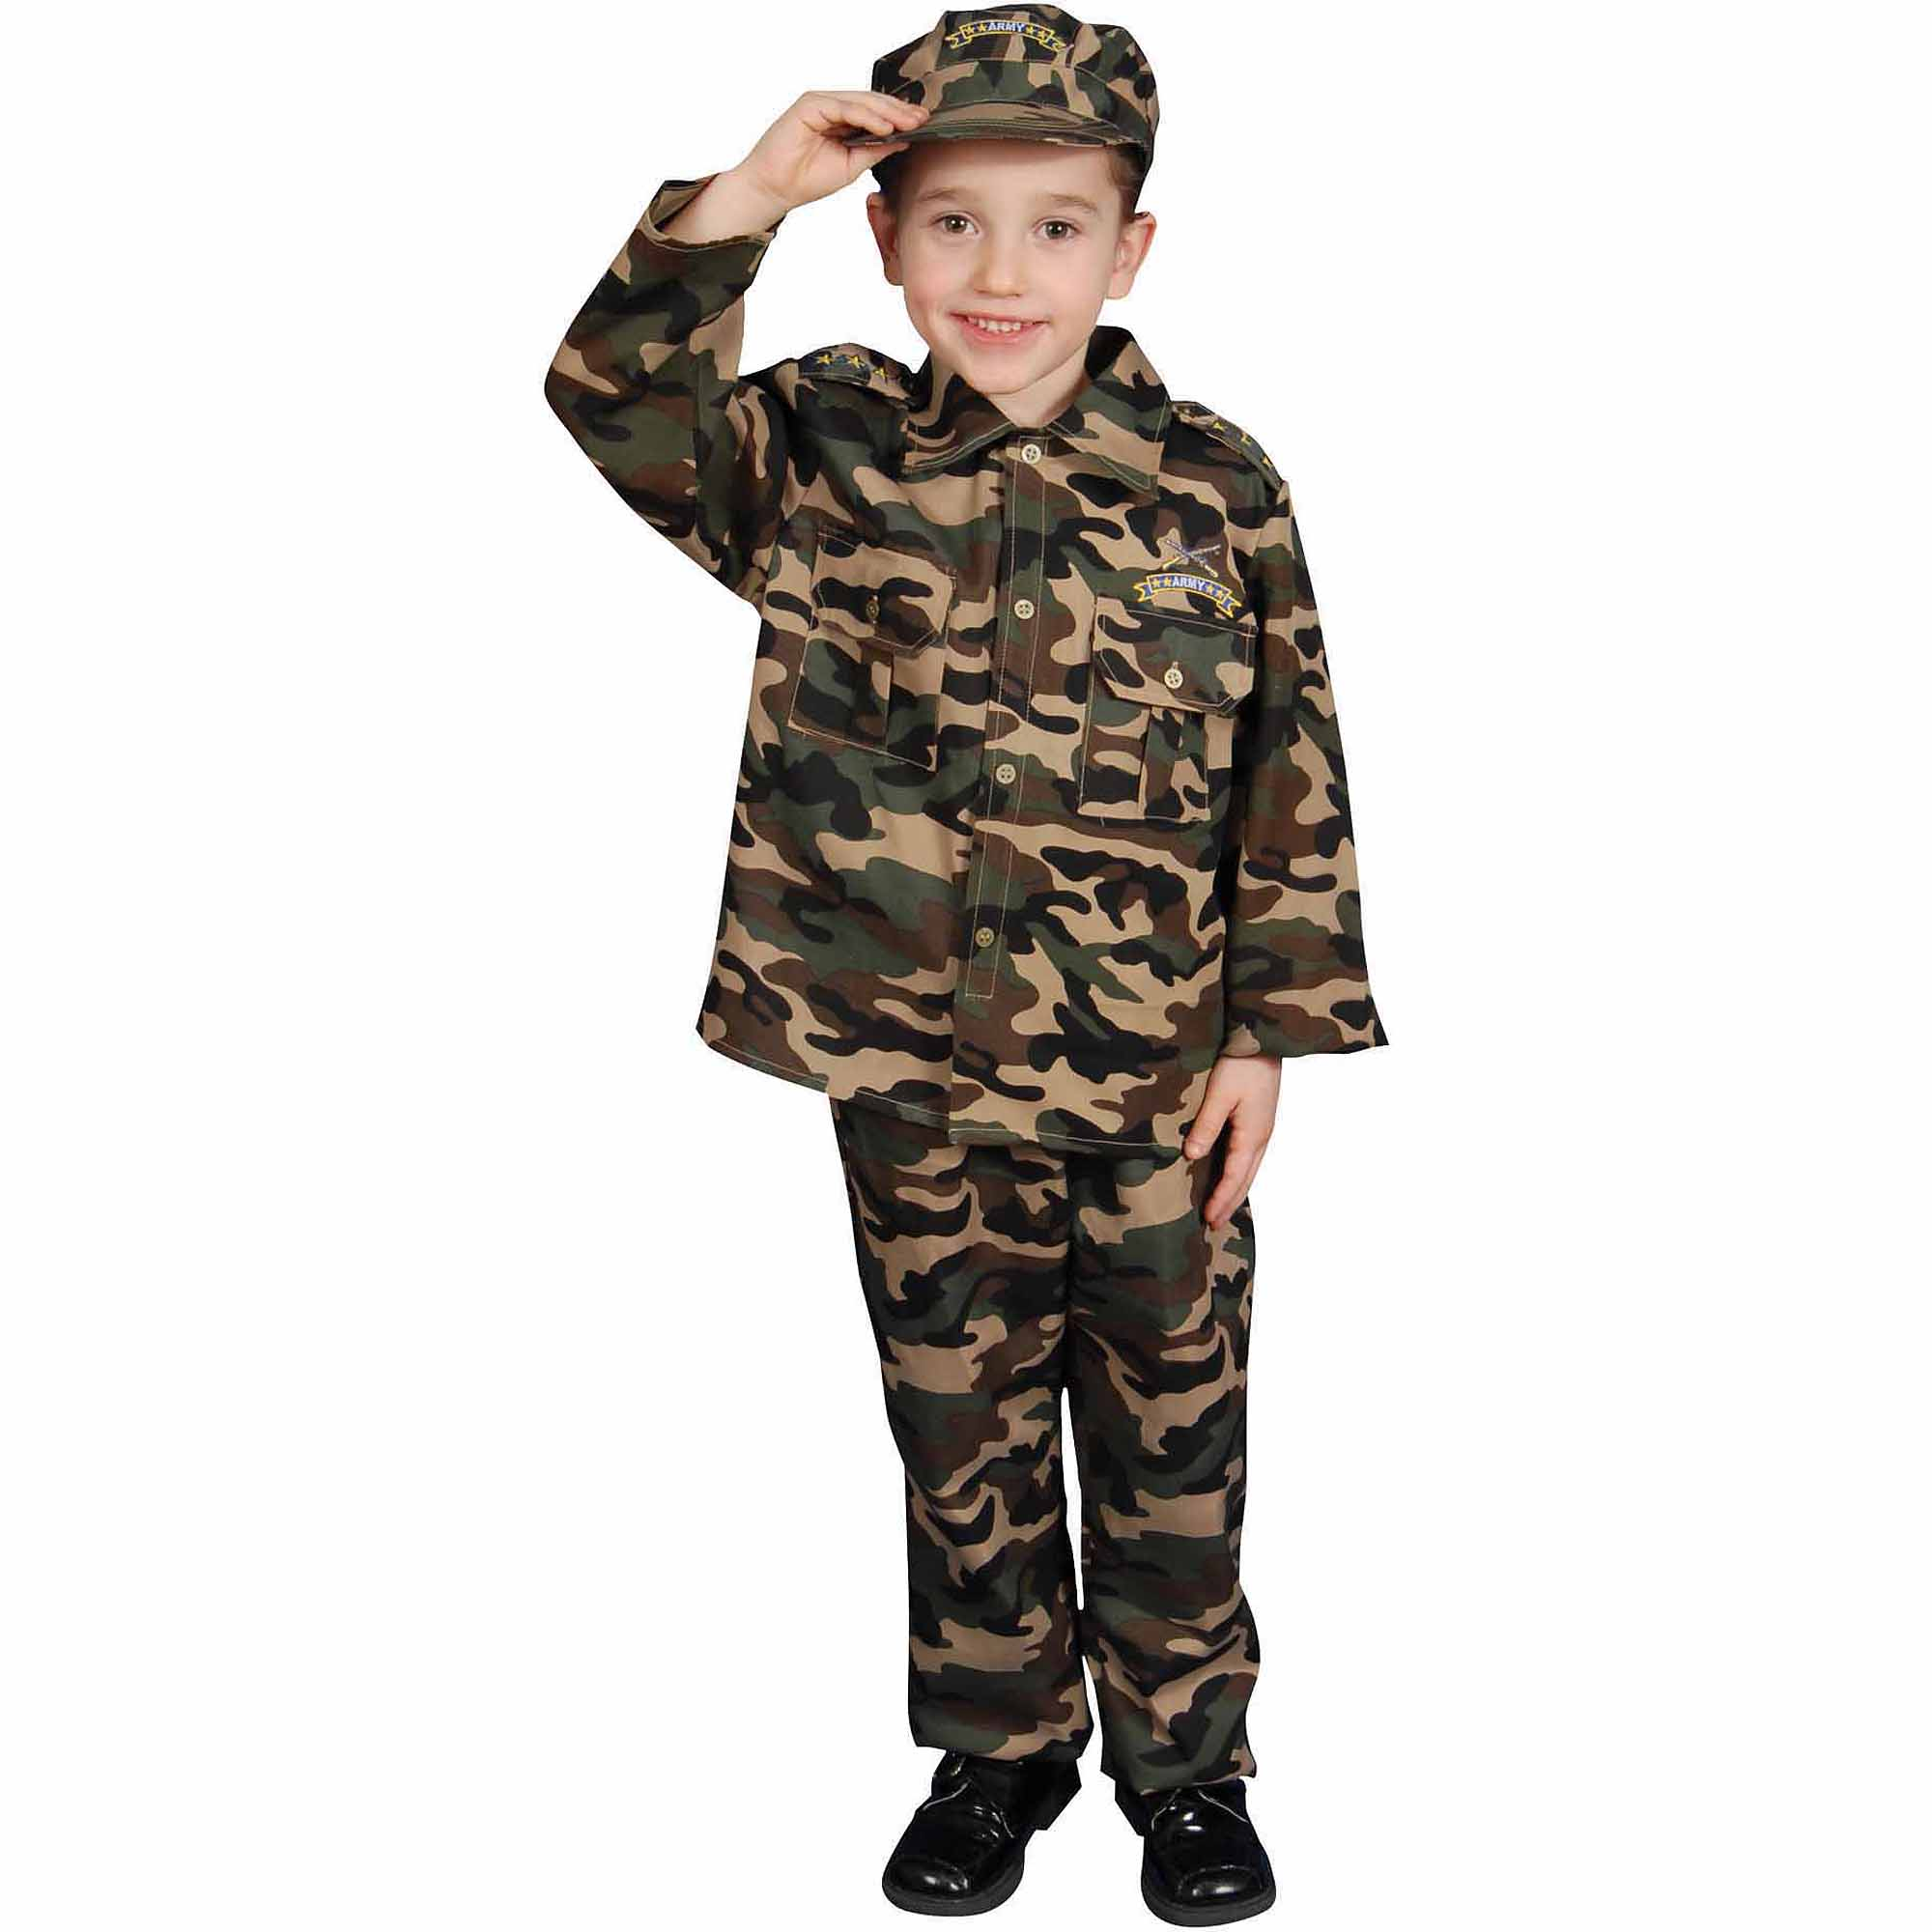 Army Child Halloween Costume